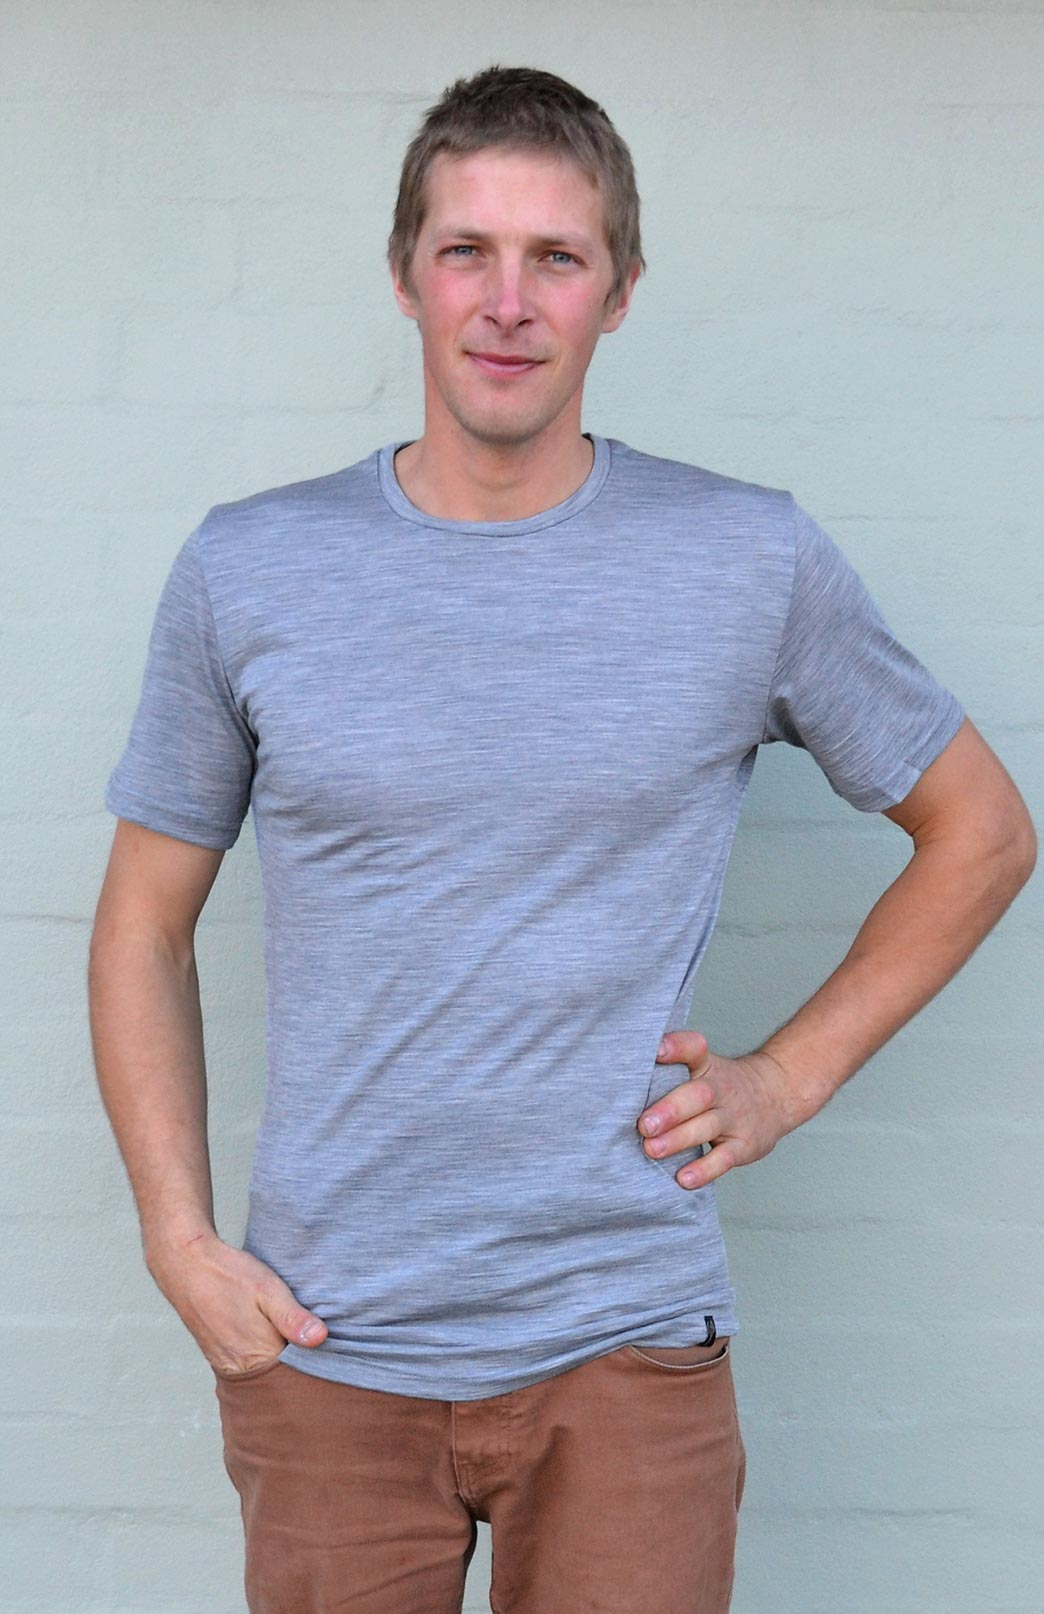 Short Sleeved Crew Neck Top - Lightweight (~170g) - Men's Light Grey Pure Merino Wool Lightweight Short Sleeved Thermal Top with Crew Neckline - Smitten Merino Tasmania Australia